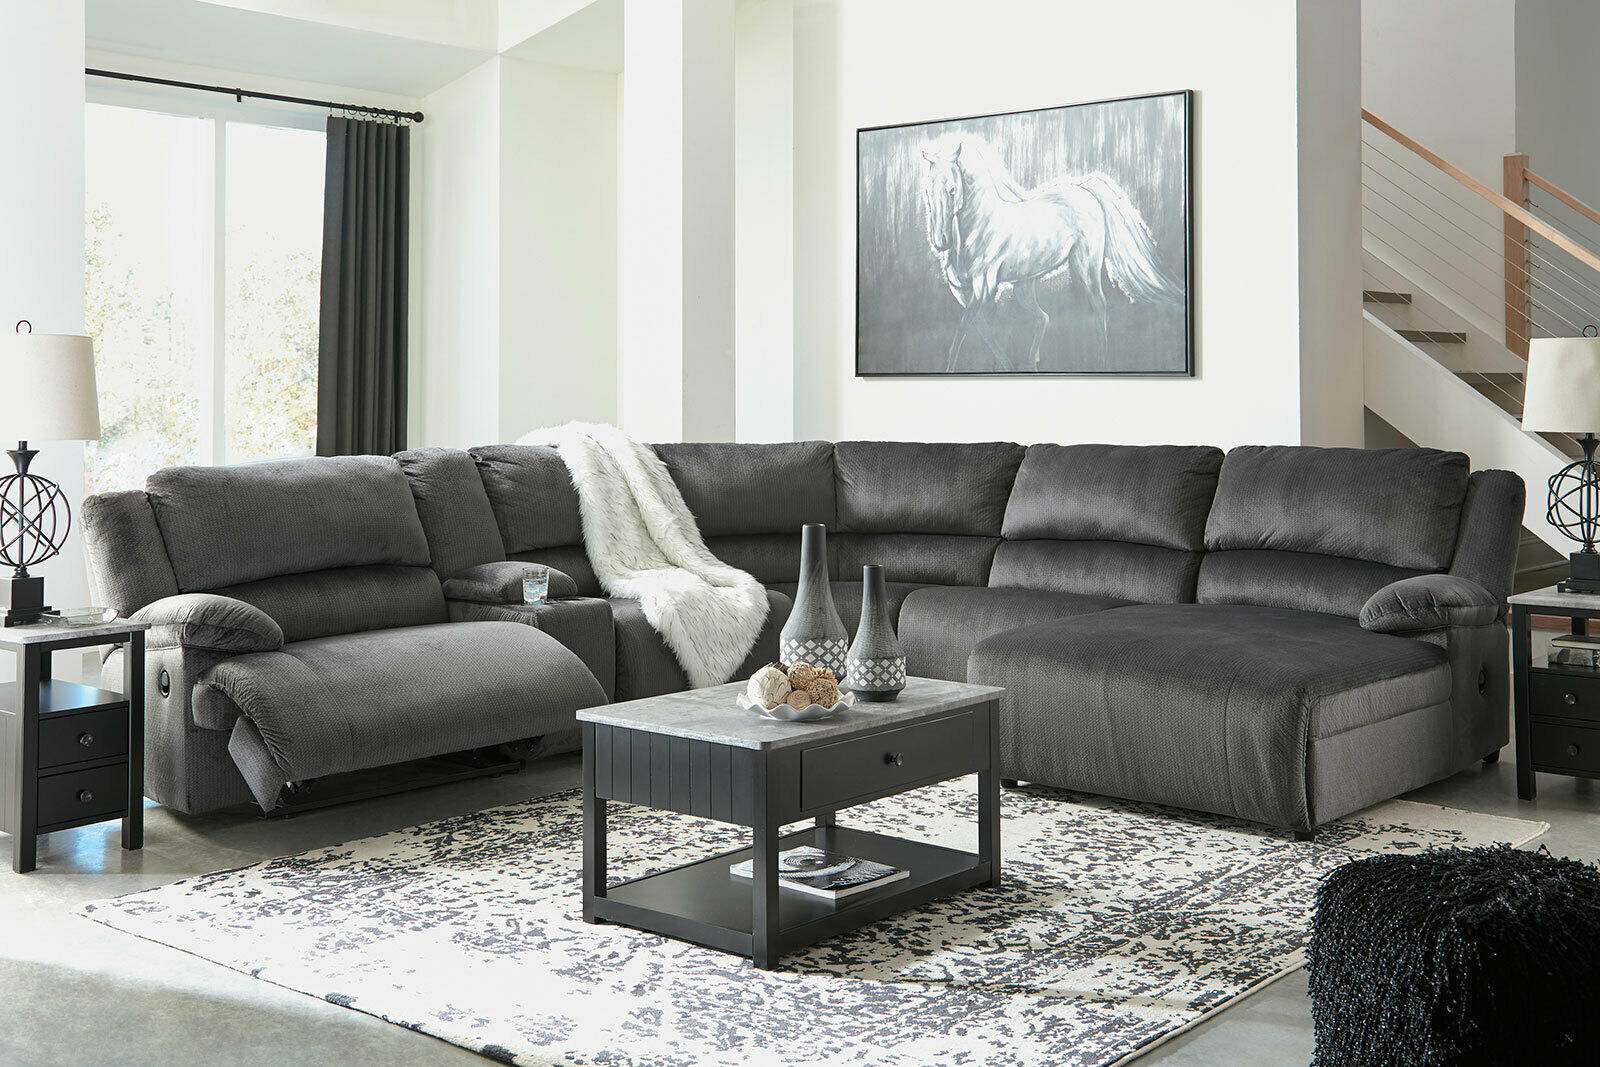 Naples 6pcs sectional living room fabric reclining sofa - Fabric reclining living room sets ...